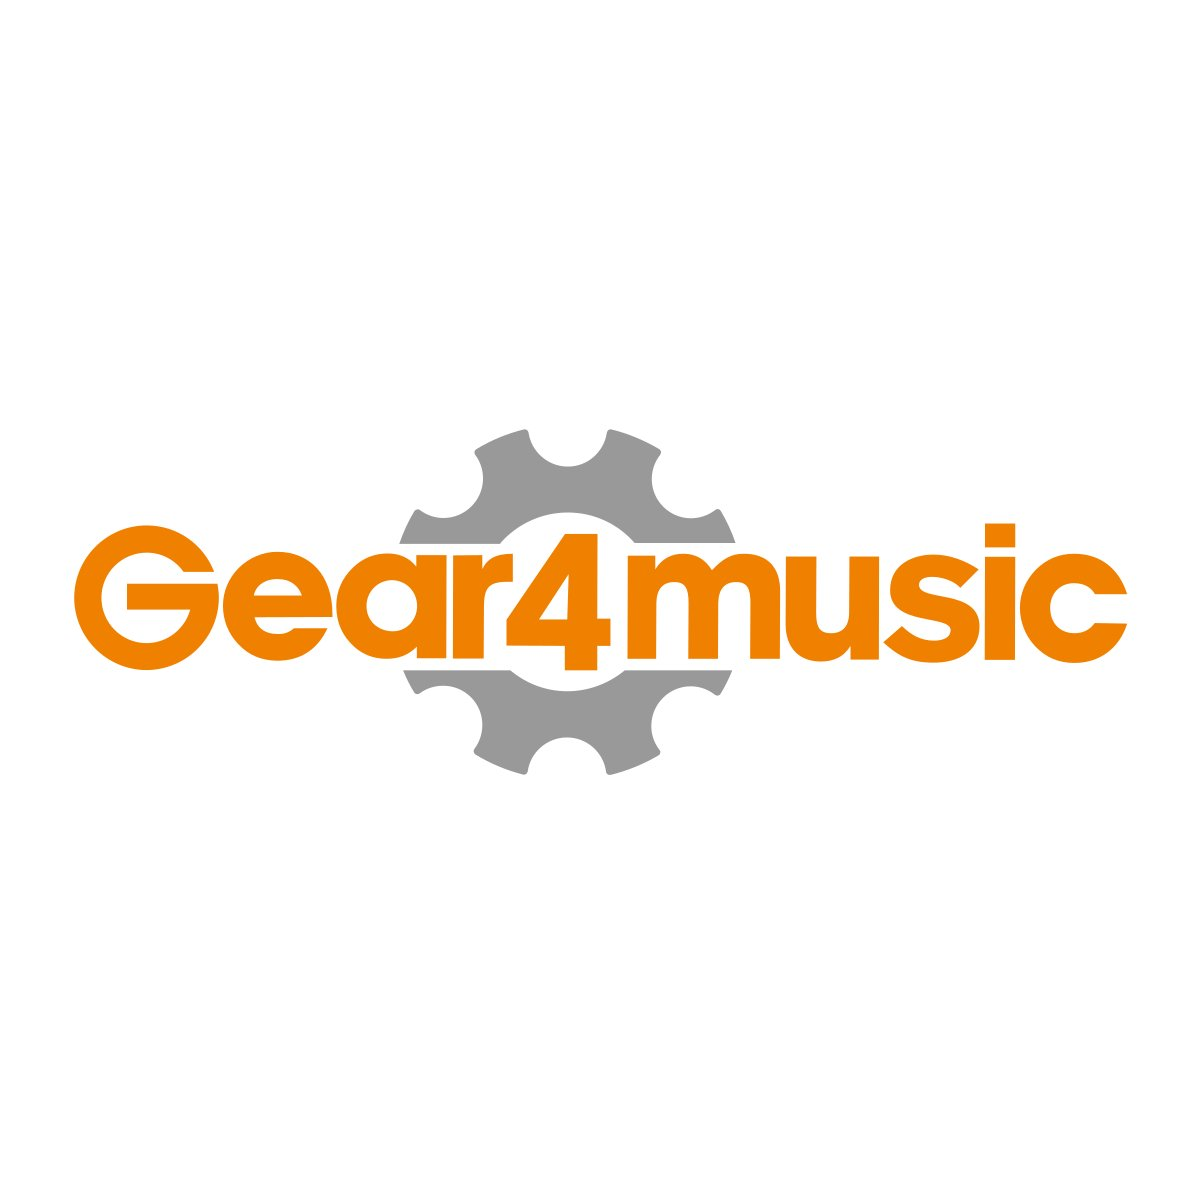 Funda de Rack 4U de 19 Pulgadas de Gear4music